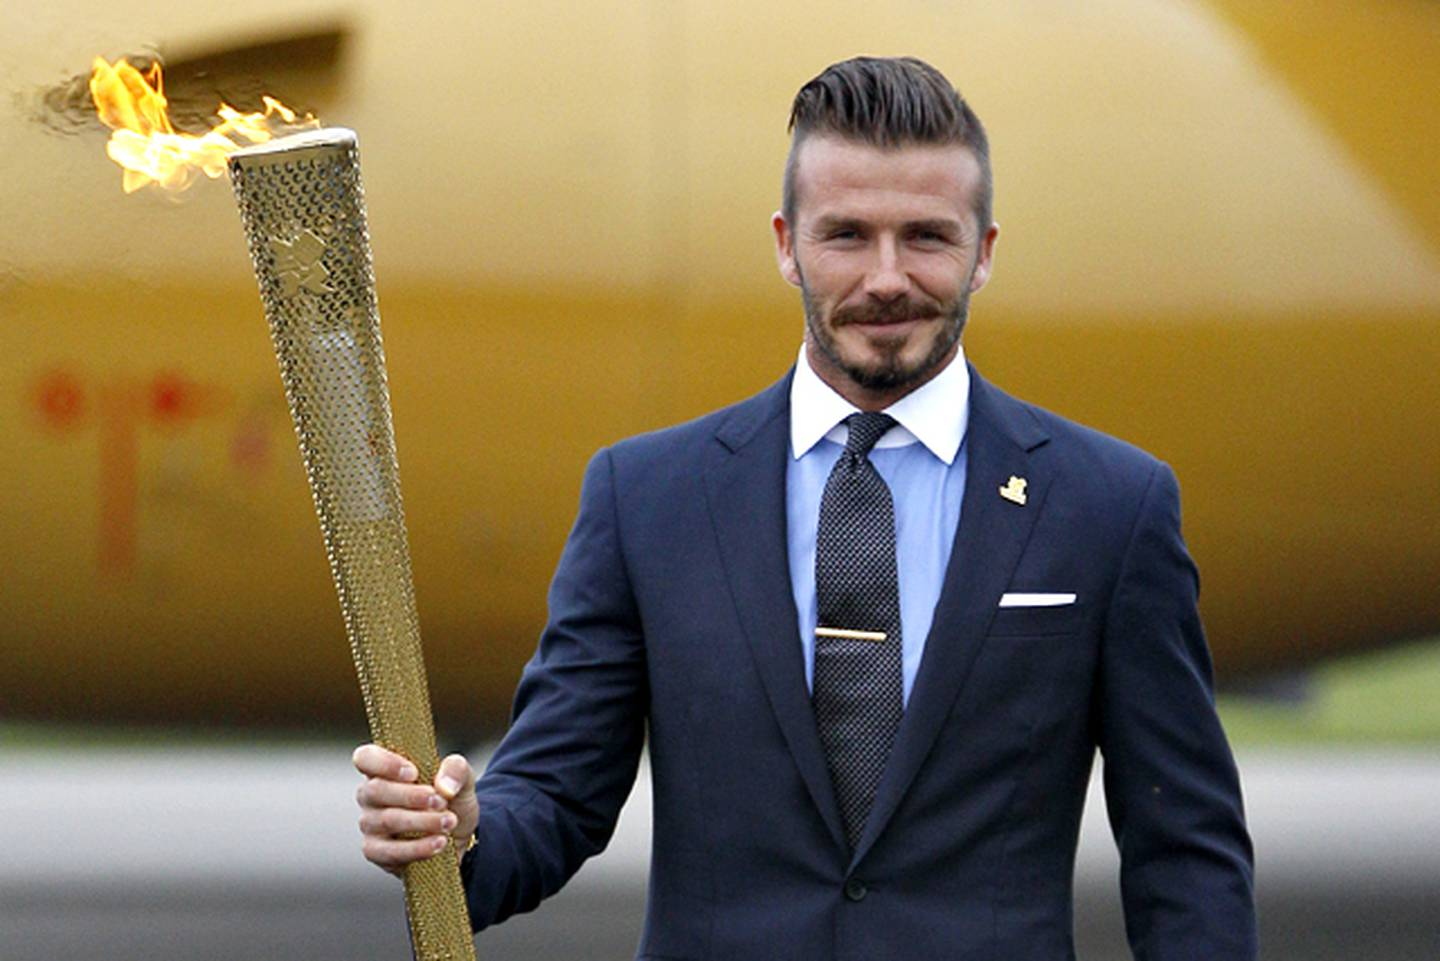 Britain's David Beckham holds the Olympic torch during the ceremony to mark the arrival of the Olympic flame to Britain from Greece, at RNAS Culdrose, Cornwall, England, Friday May 18, 2012. (AP Photo/Alastair Grant)